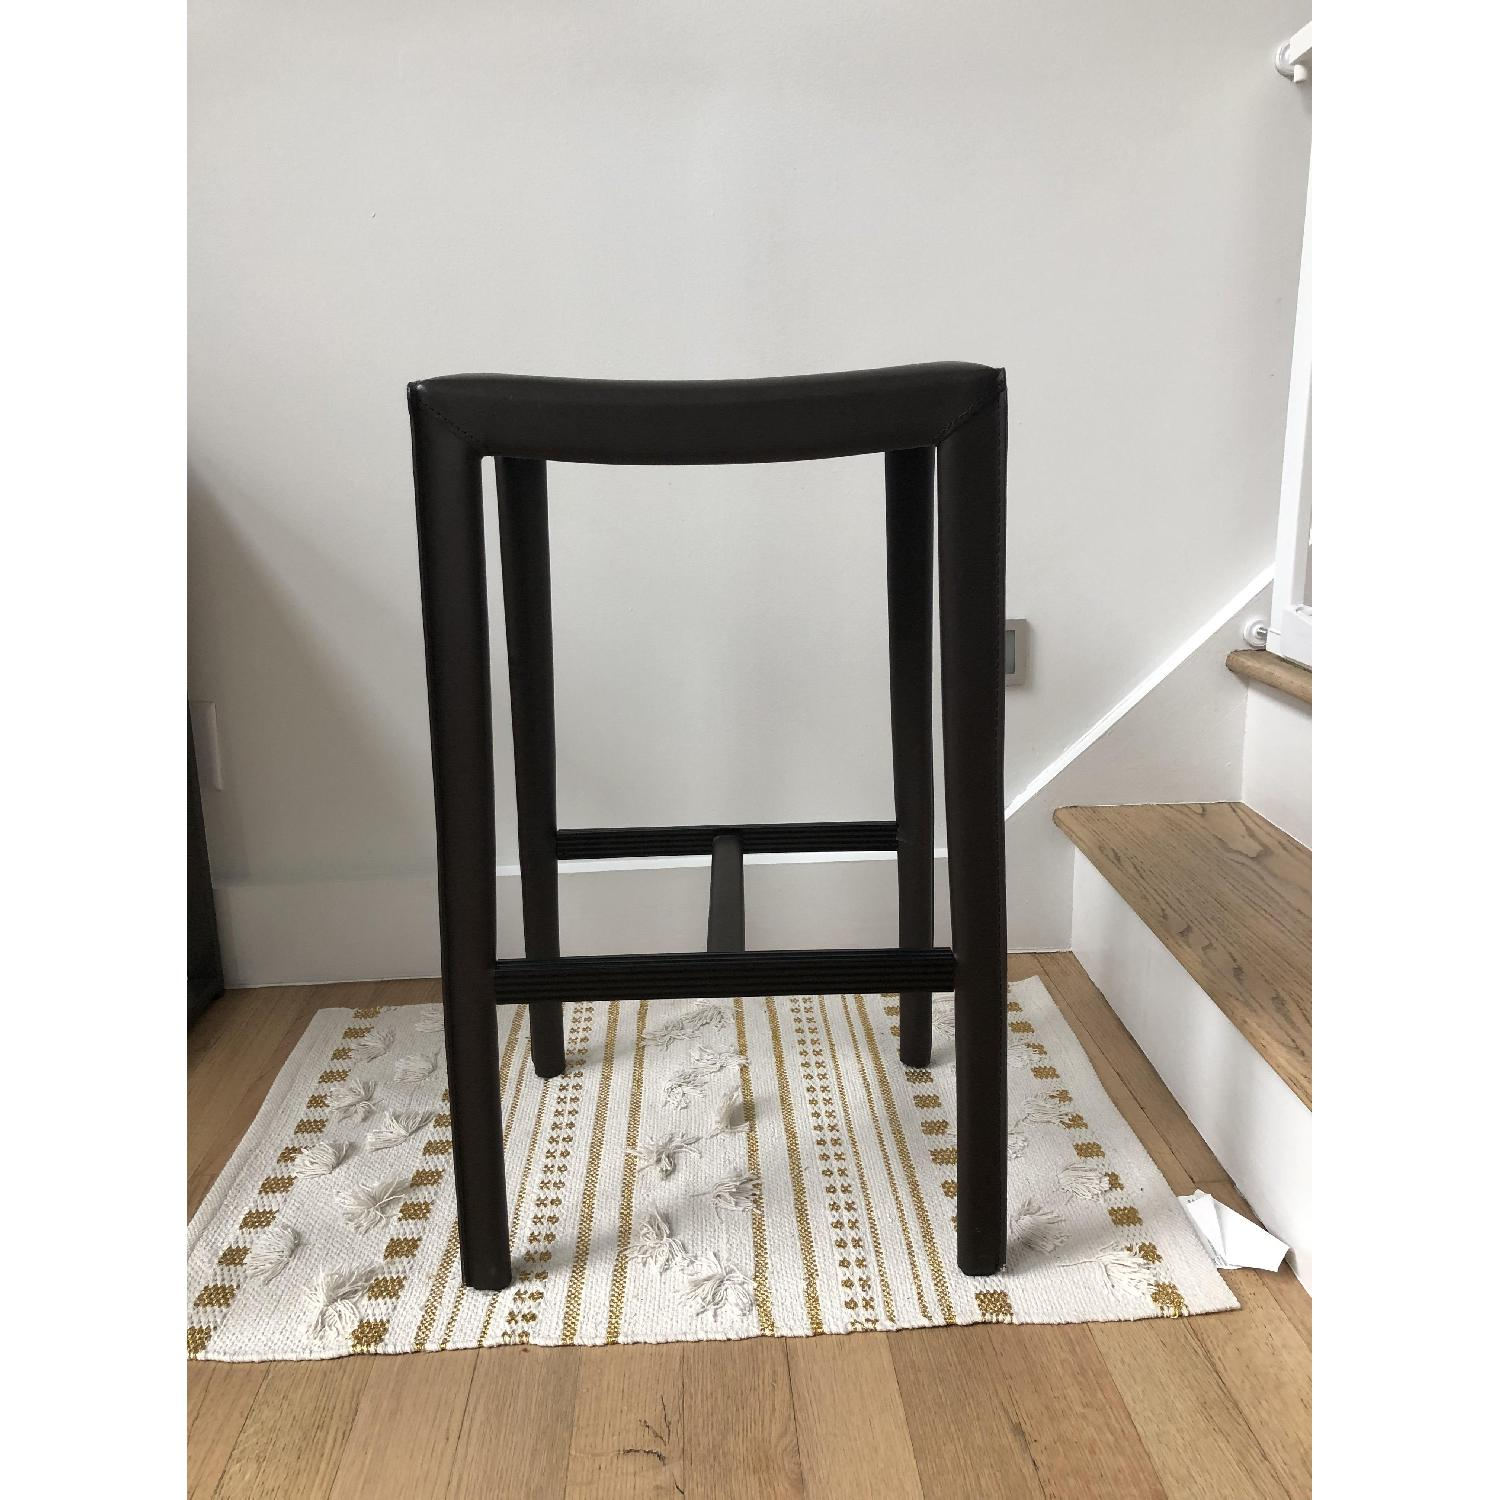 Crate & Barrel Folio Saddle Top-Grain Leather Bar Stools - image-1